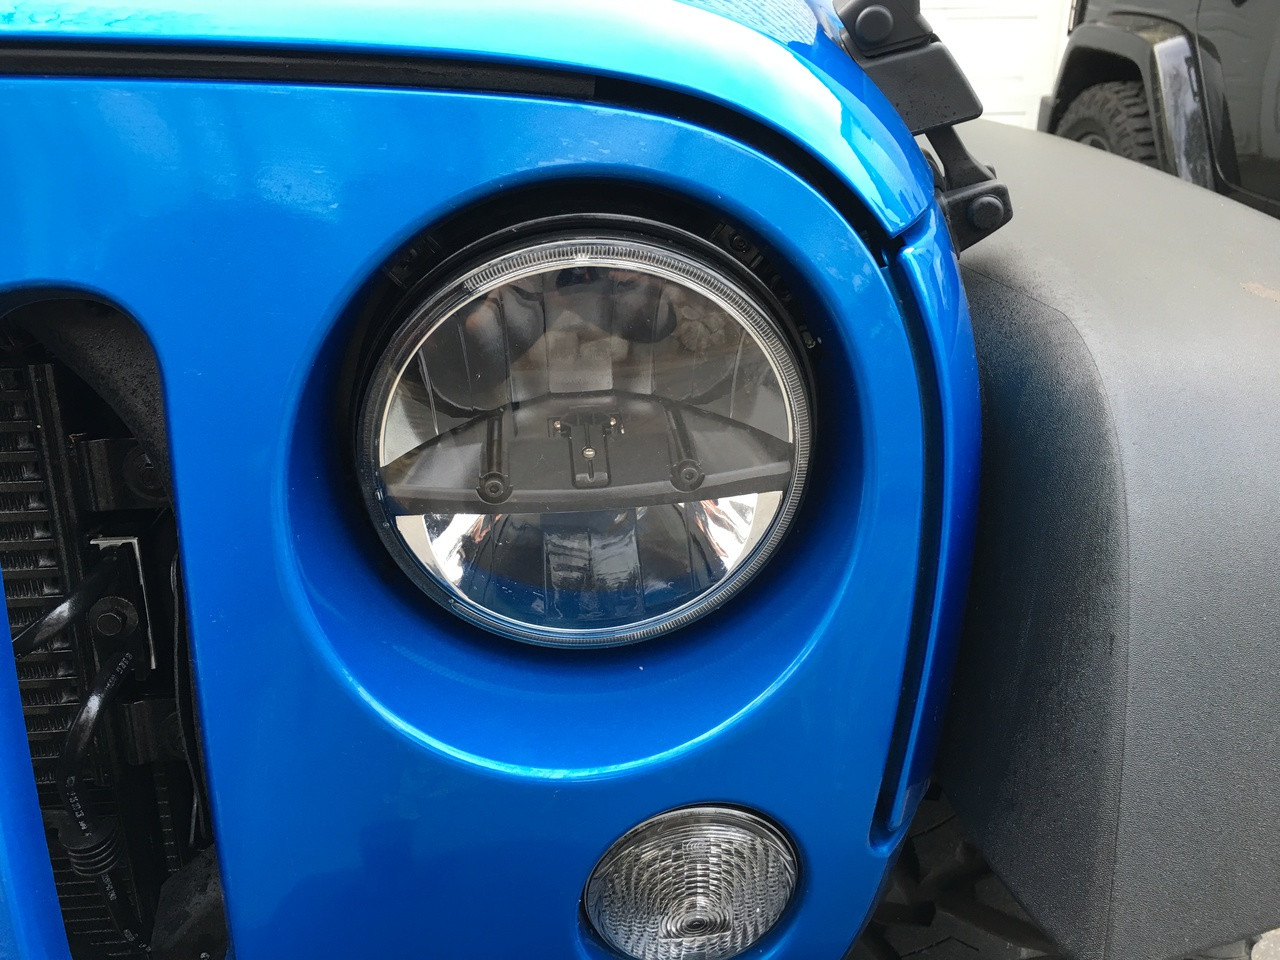 Show on Jeep Wrangler with Truck-Lite Headlamp